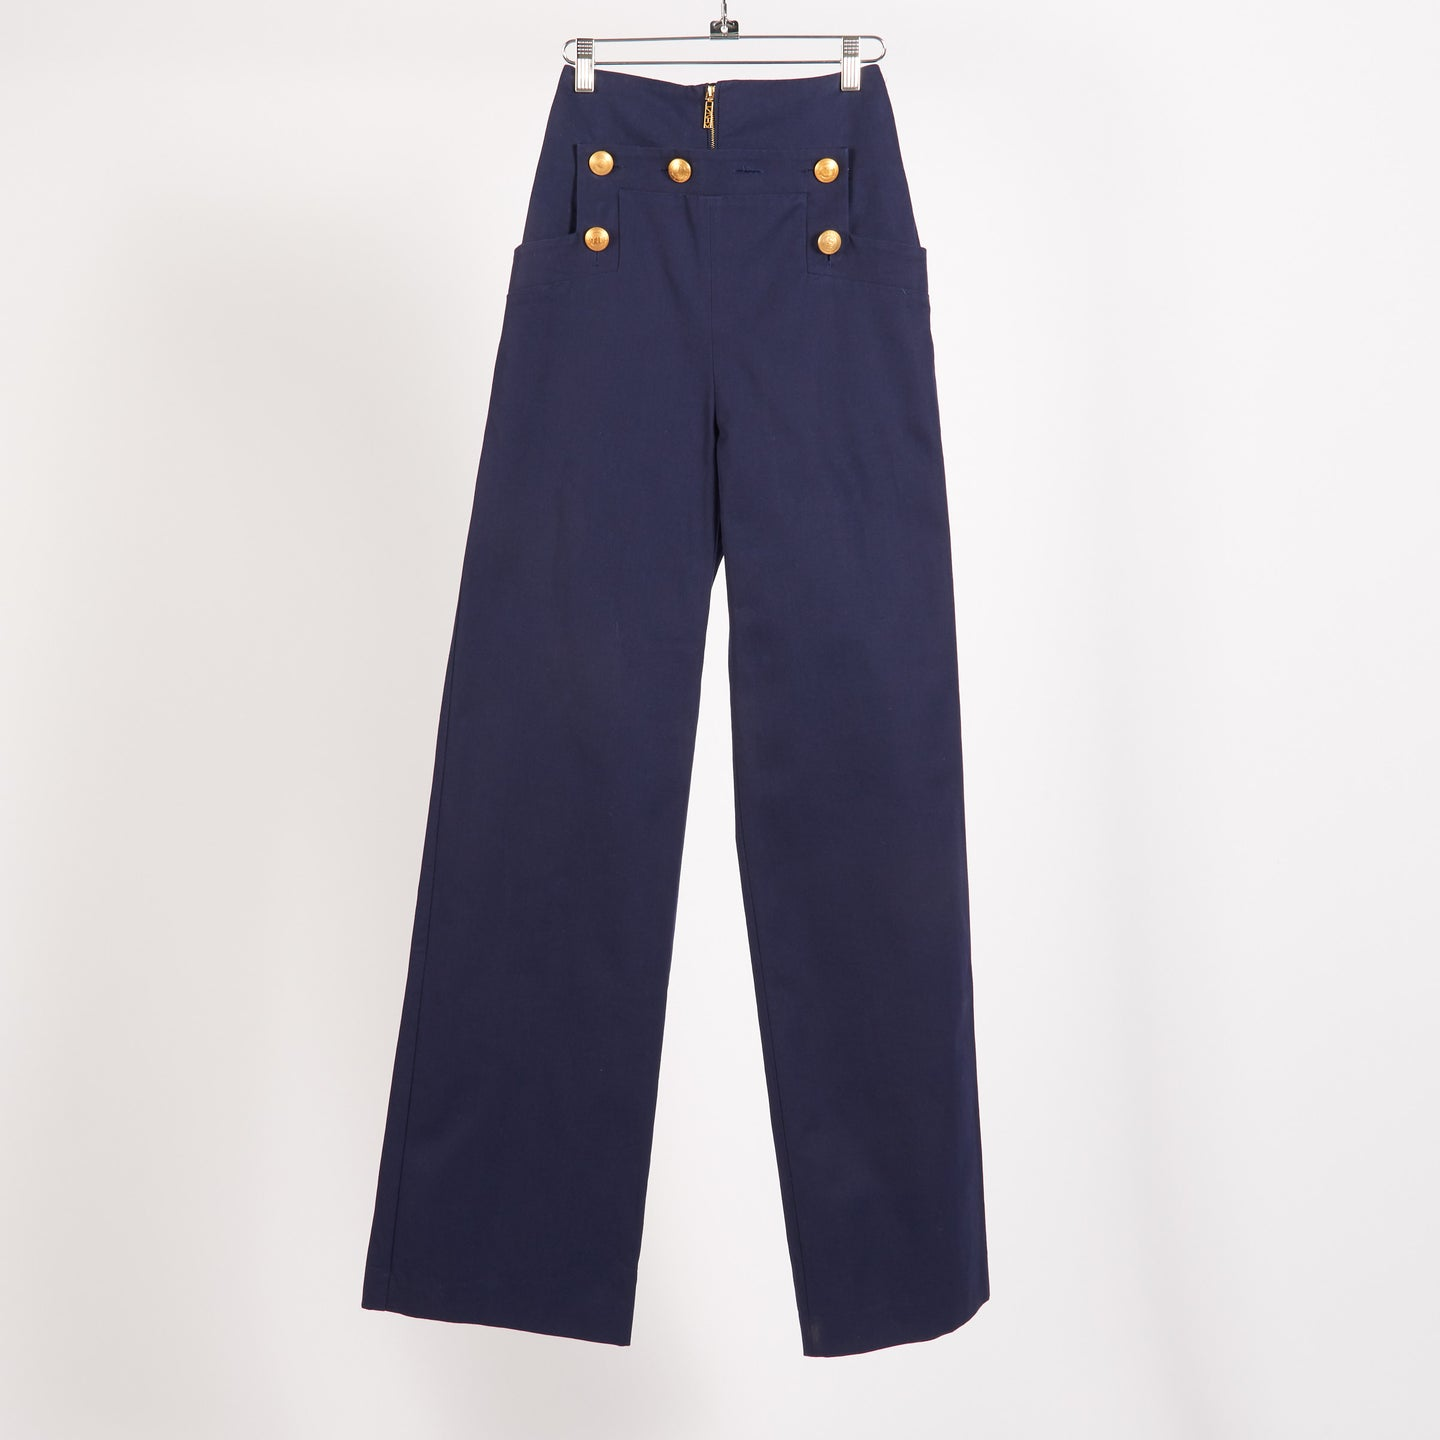 Navy Sailor Trousers (34)